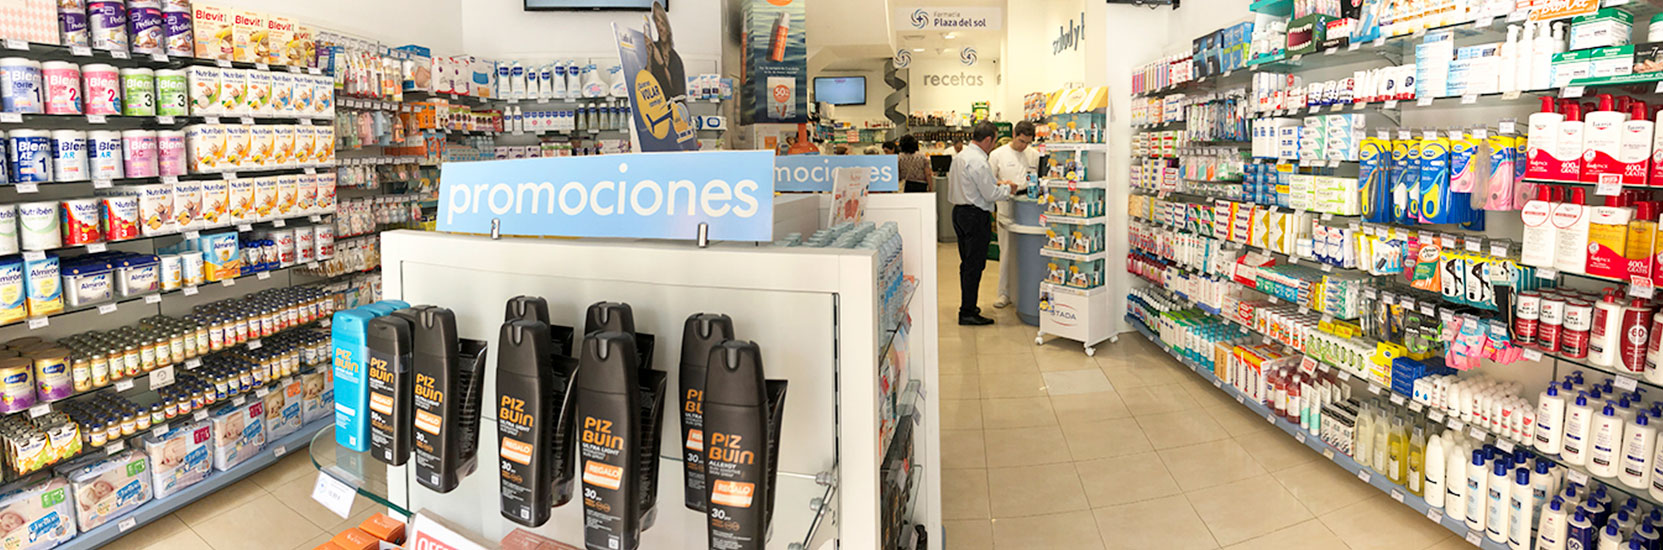 Farmacia plaza del sol slider 1